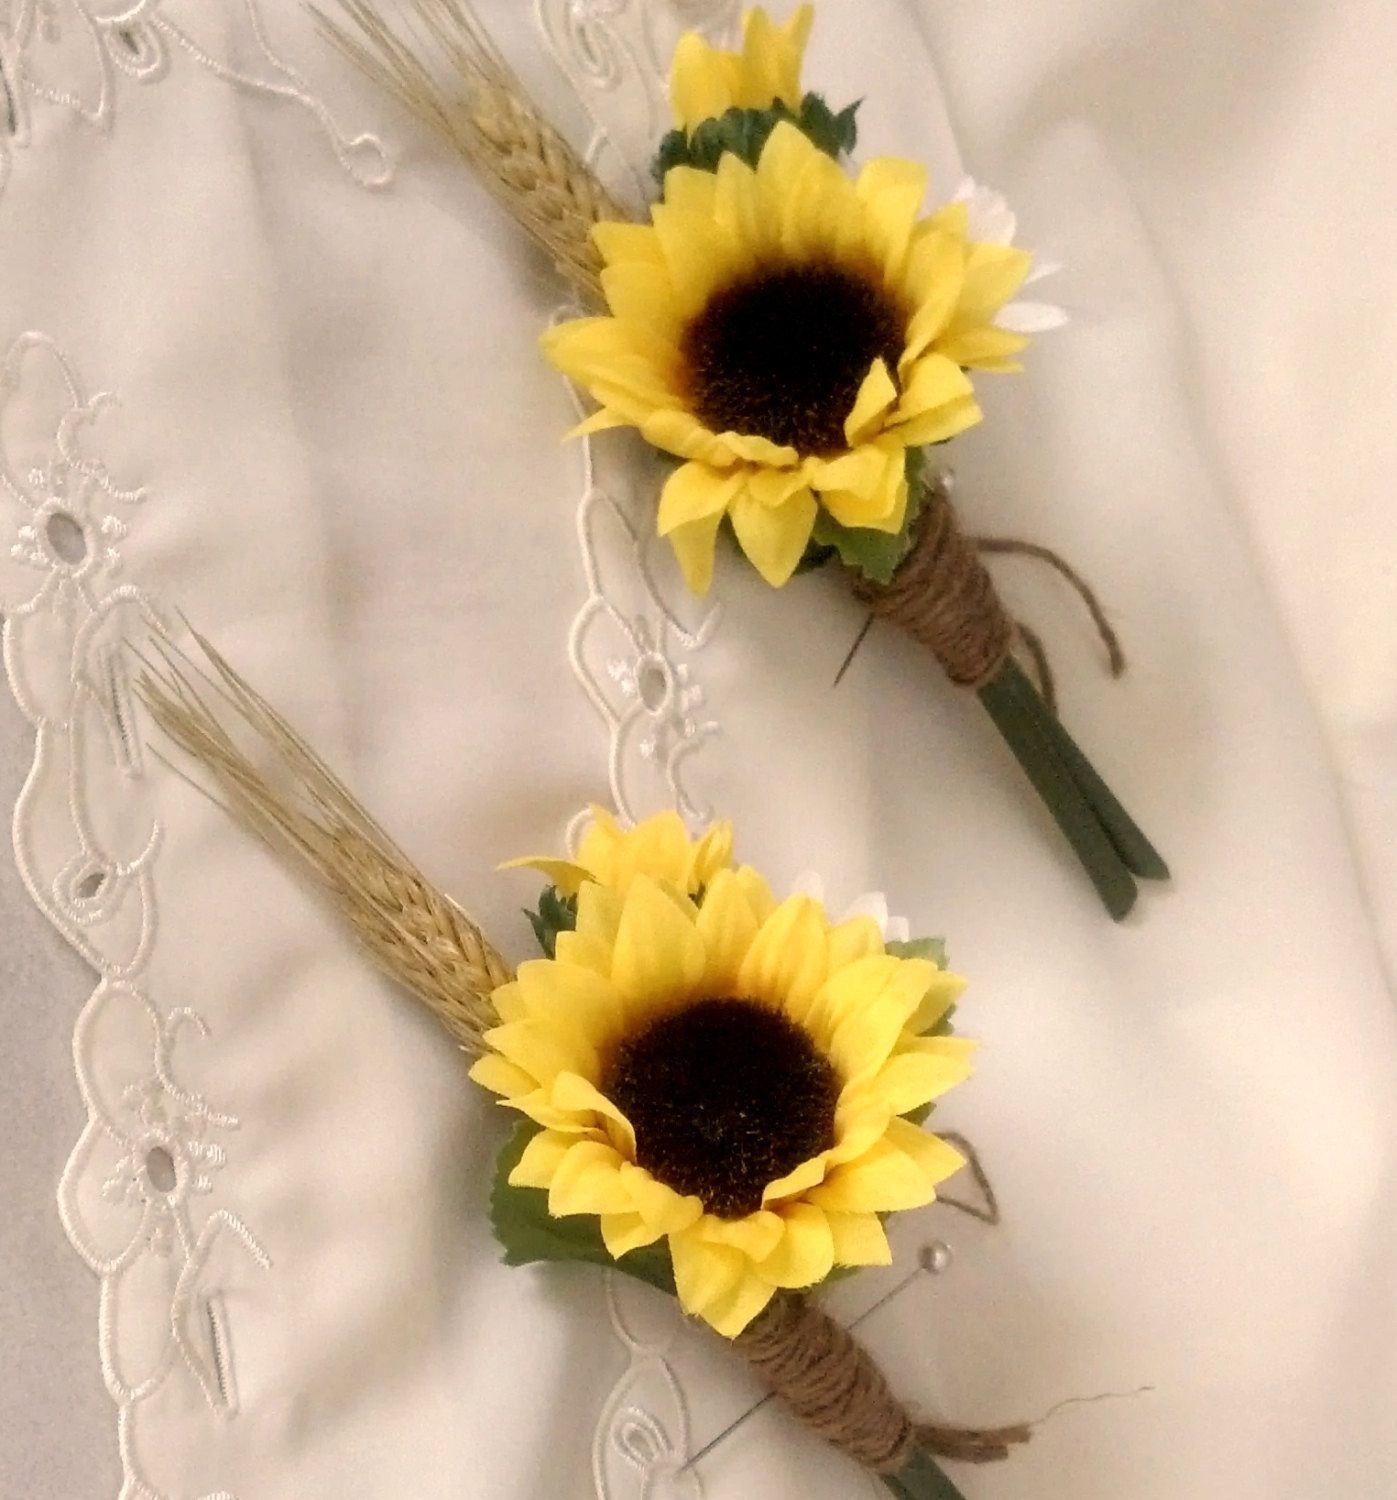 Wedding bouquets of sunflowers  Flowers for the guys   Wedding  Pinterest  The guys For